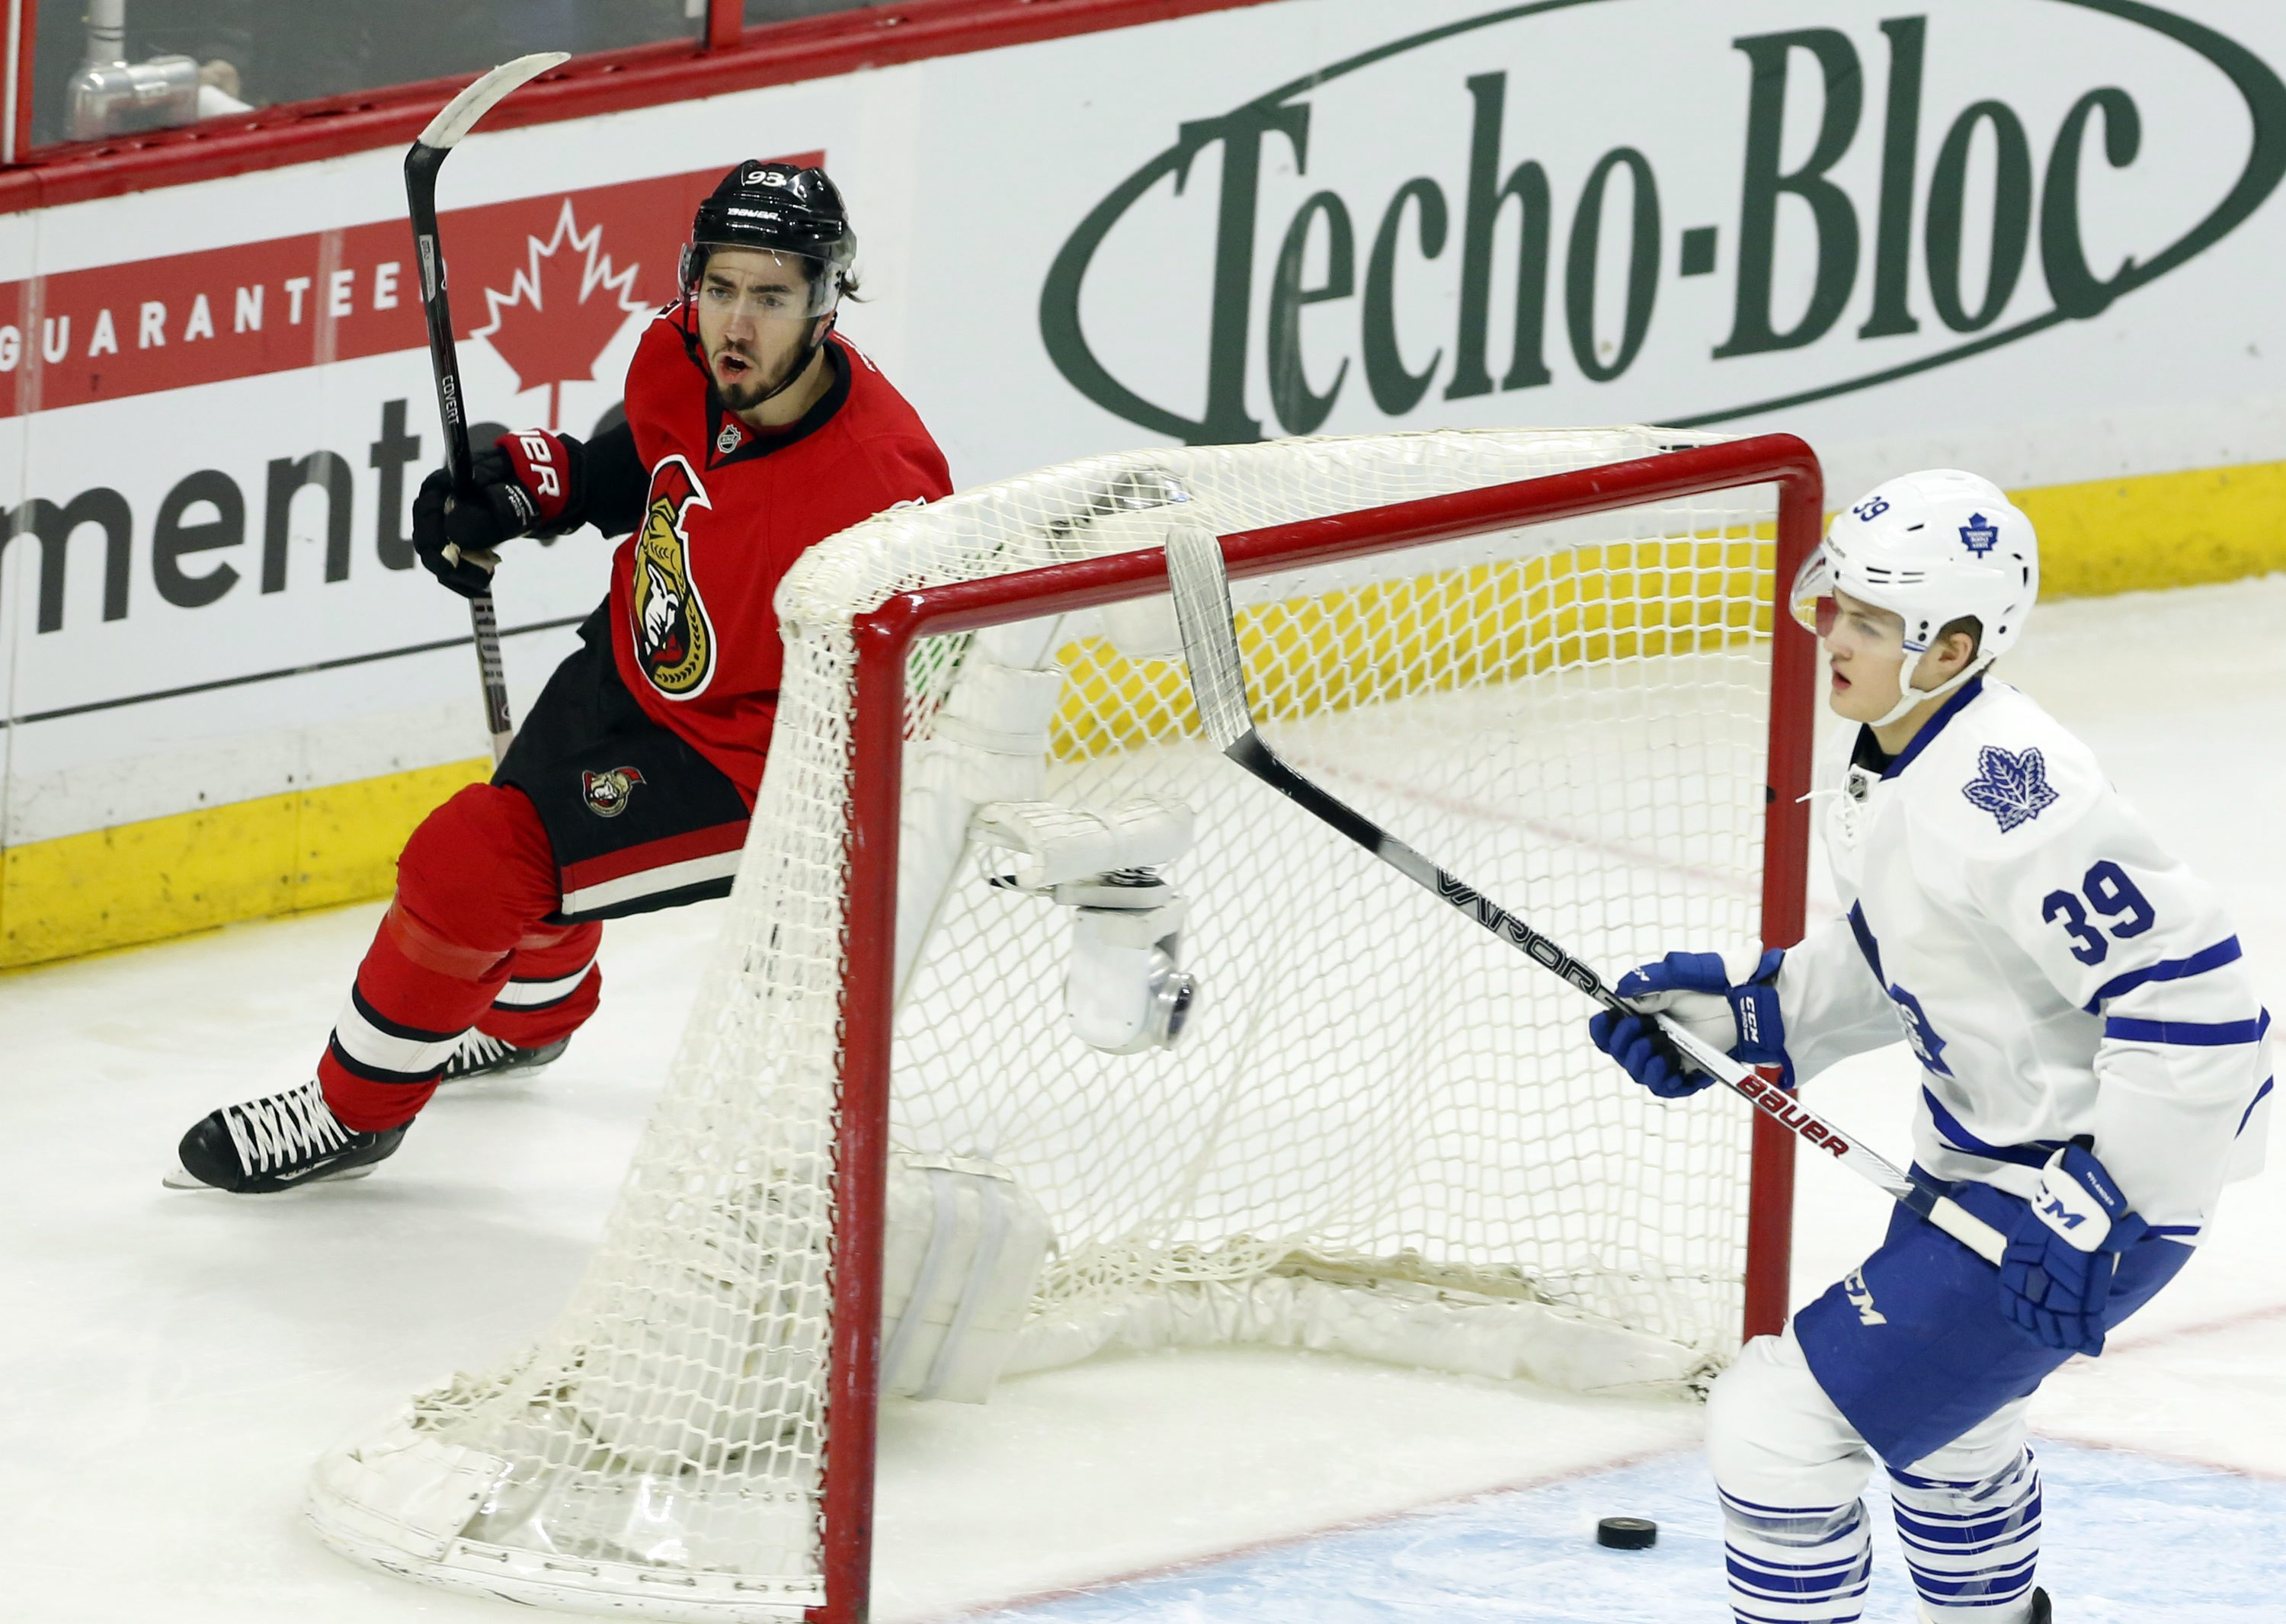 Ottawa Senators' Mika Zibanejad (93) celebrates his goal as Toronto Maple Leafs' William Nylander (39) looks on during the first period of an NHL hockey gane in Ottawa, Ontario, Saturday, March 12, 2016. (Fred Chartrand/The Canadian Press via AP) MANDATOR